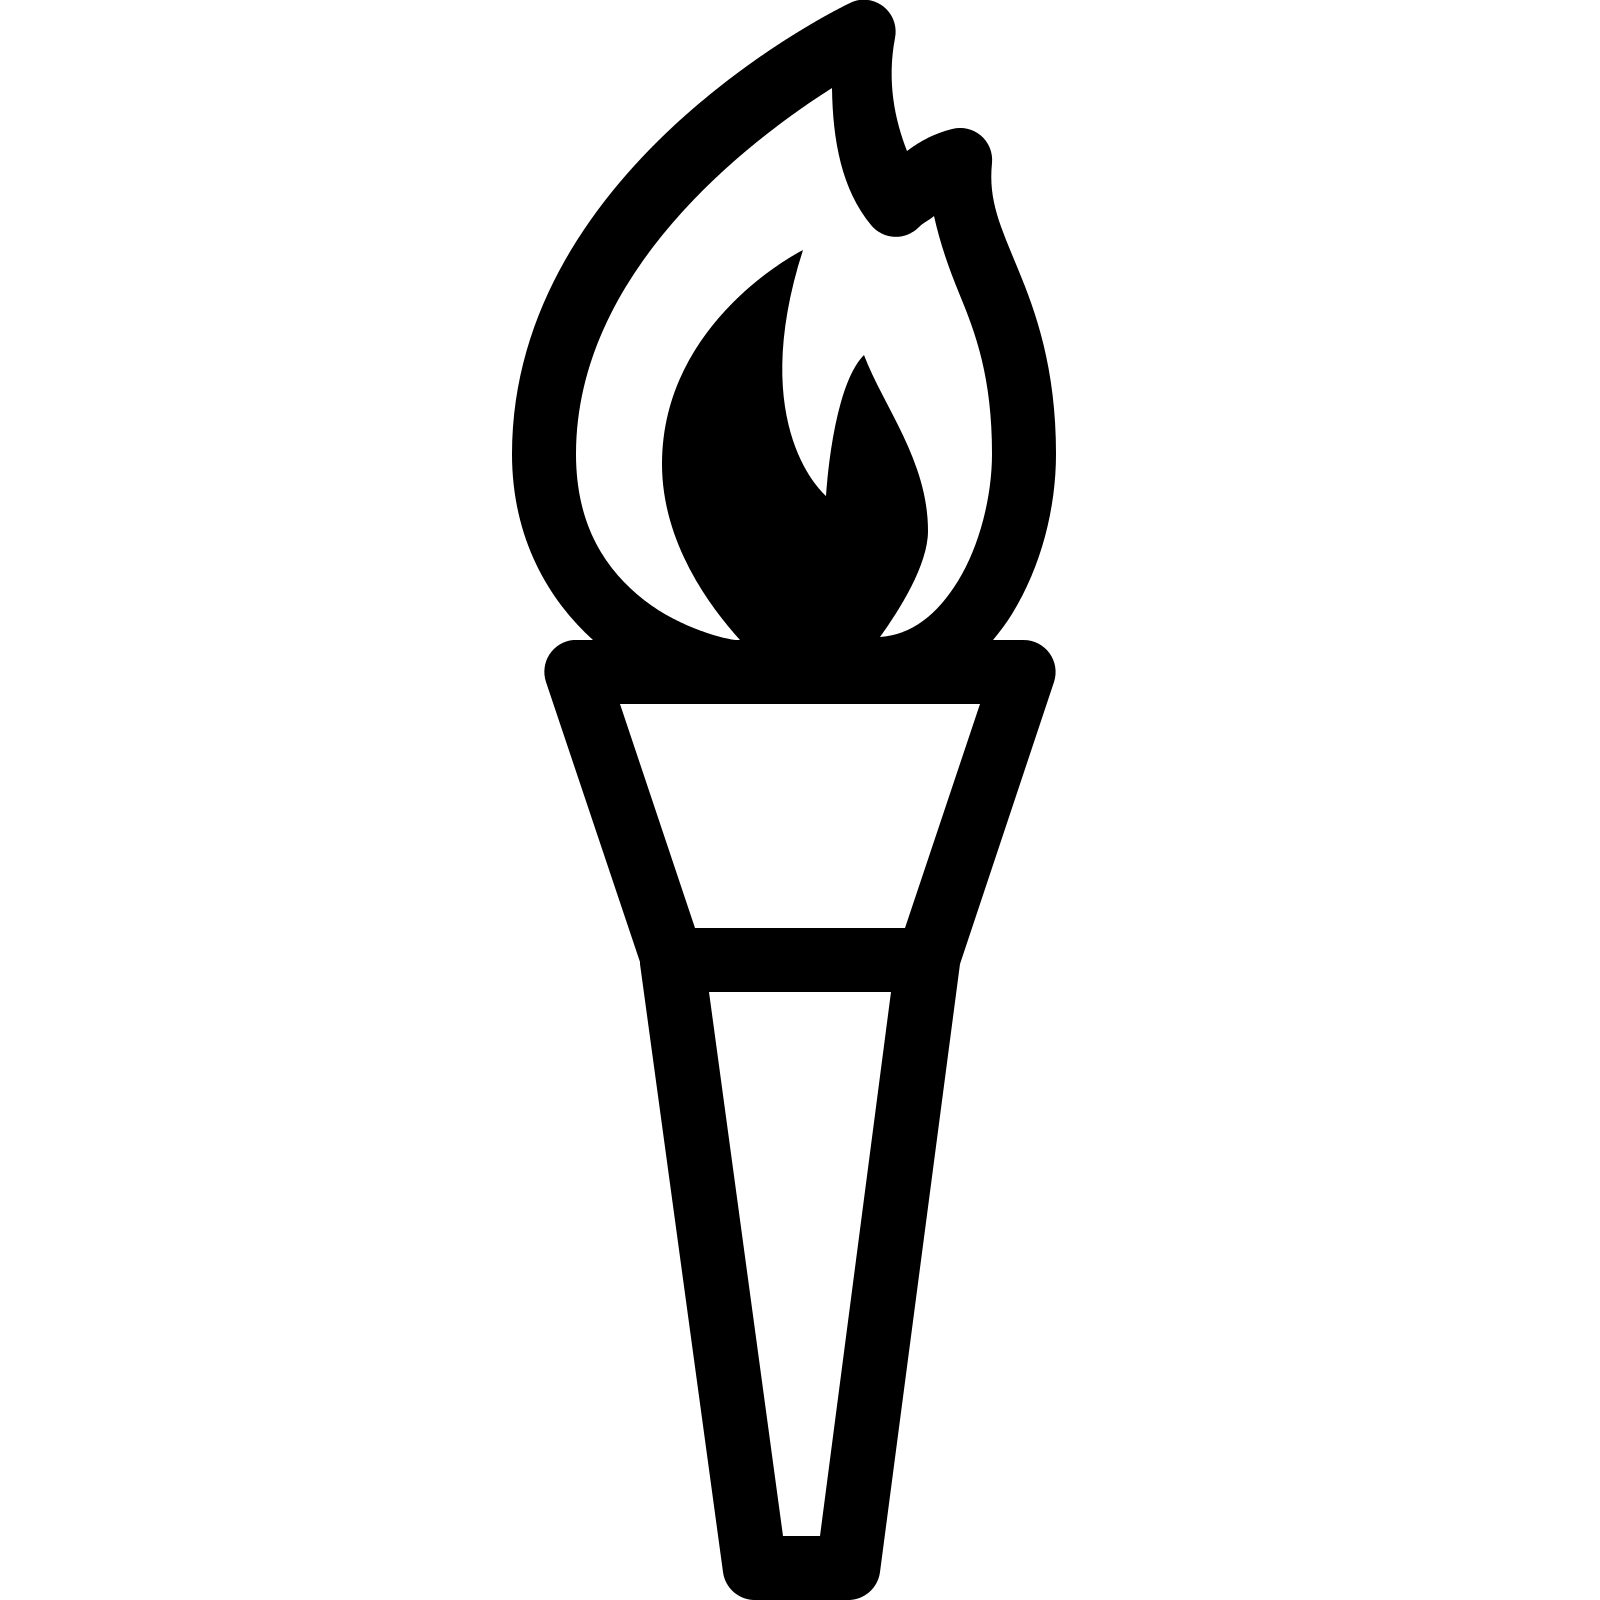 Olympic Games Clipart Book Torch